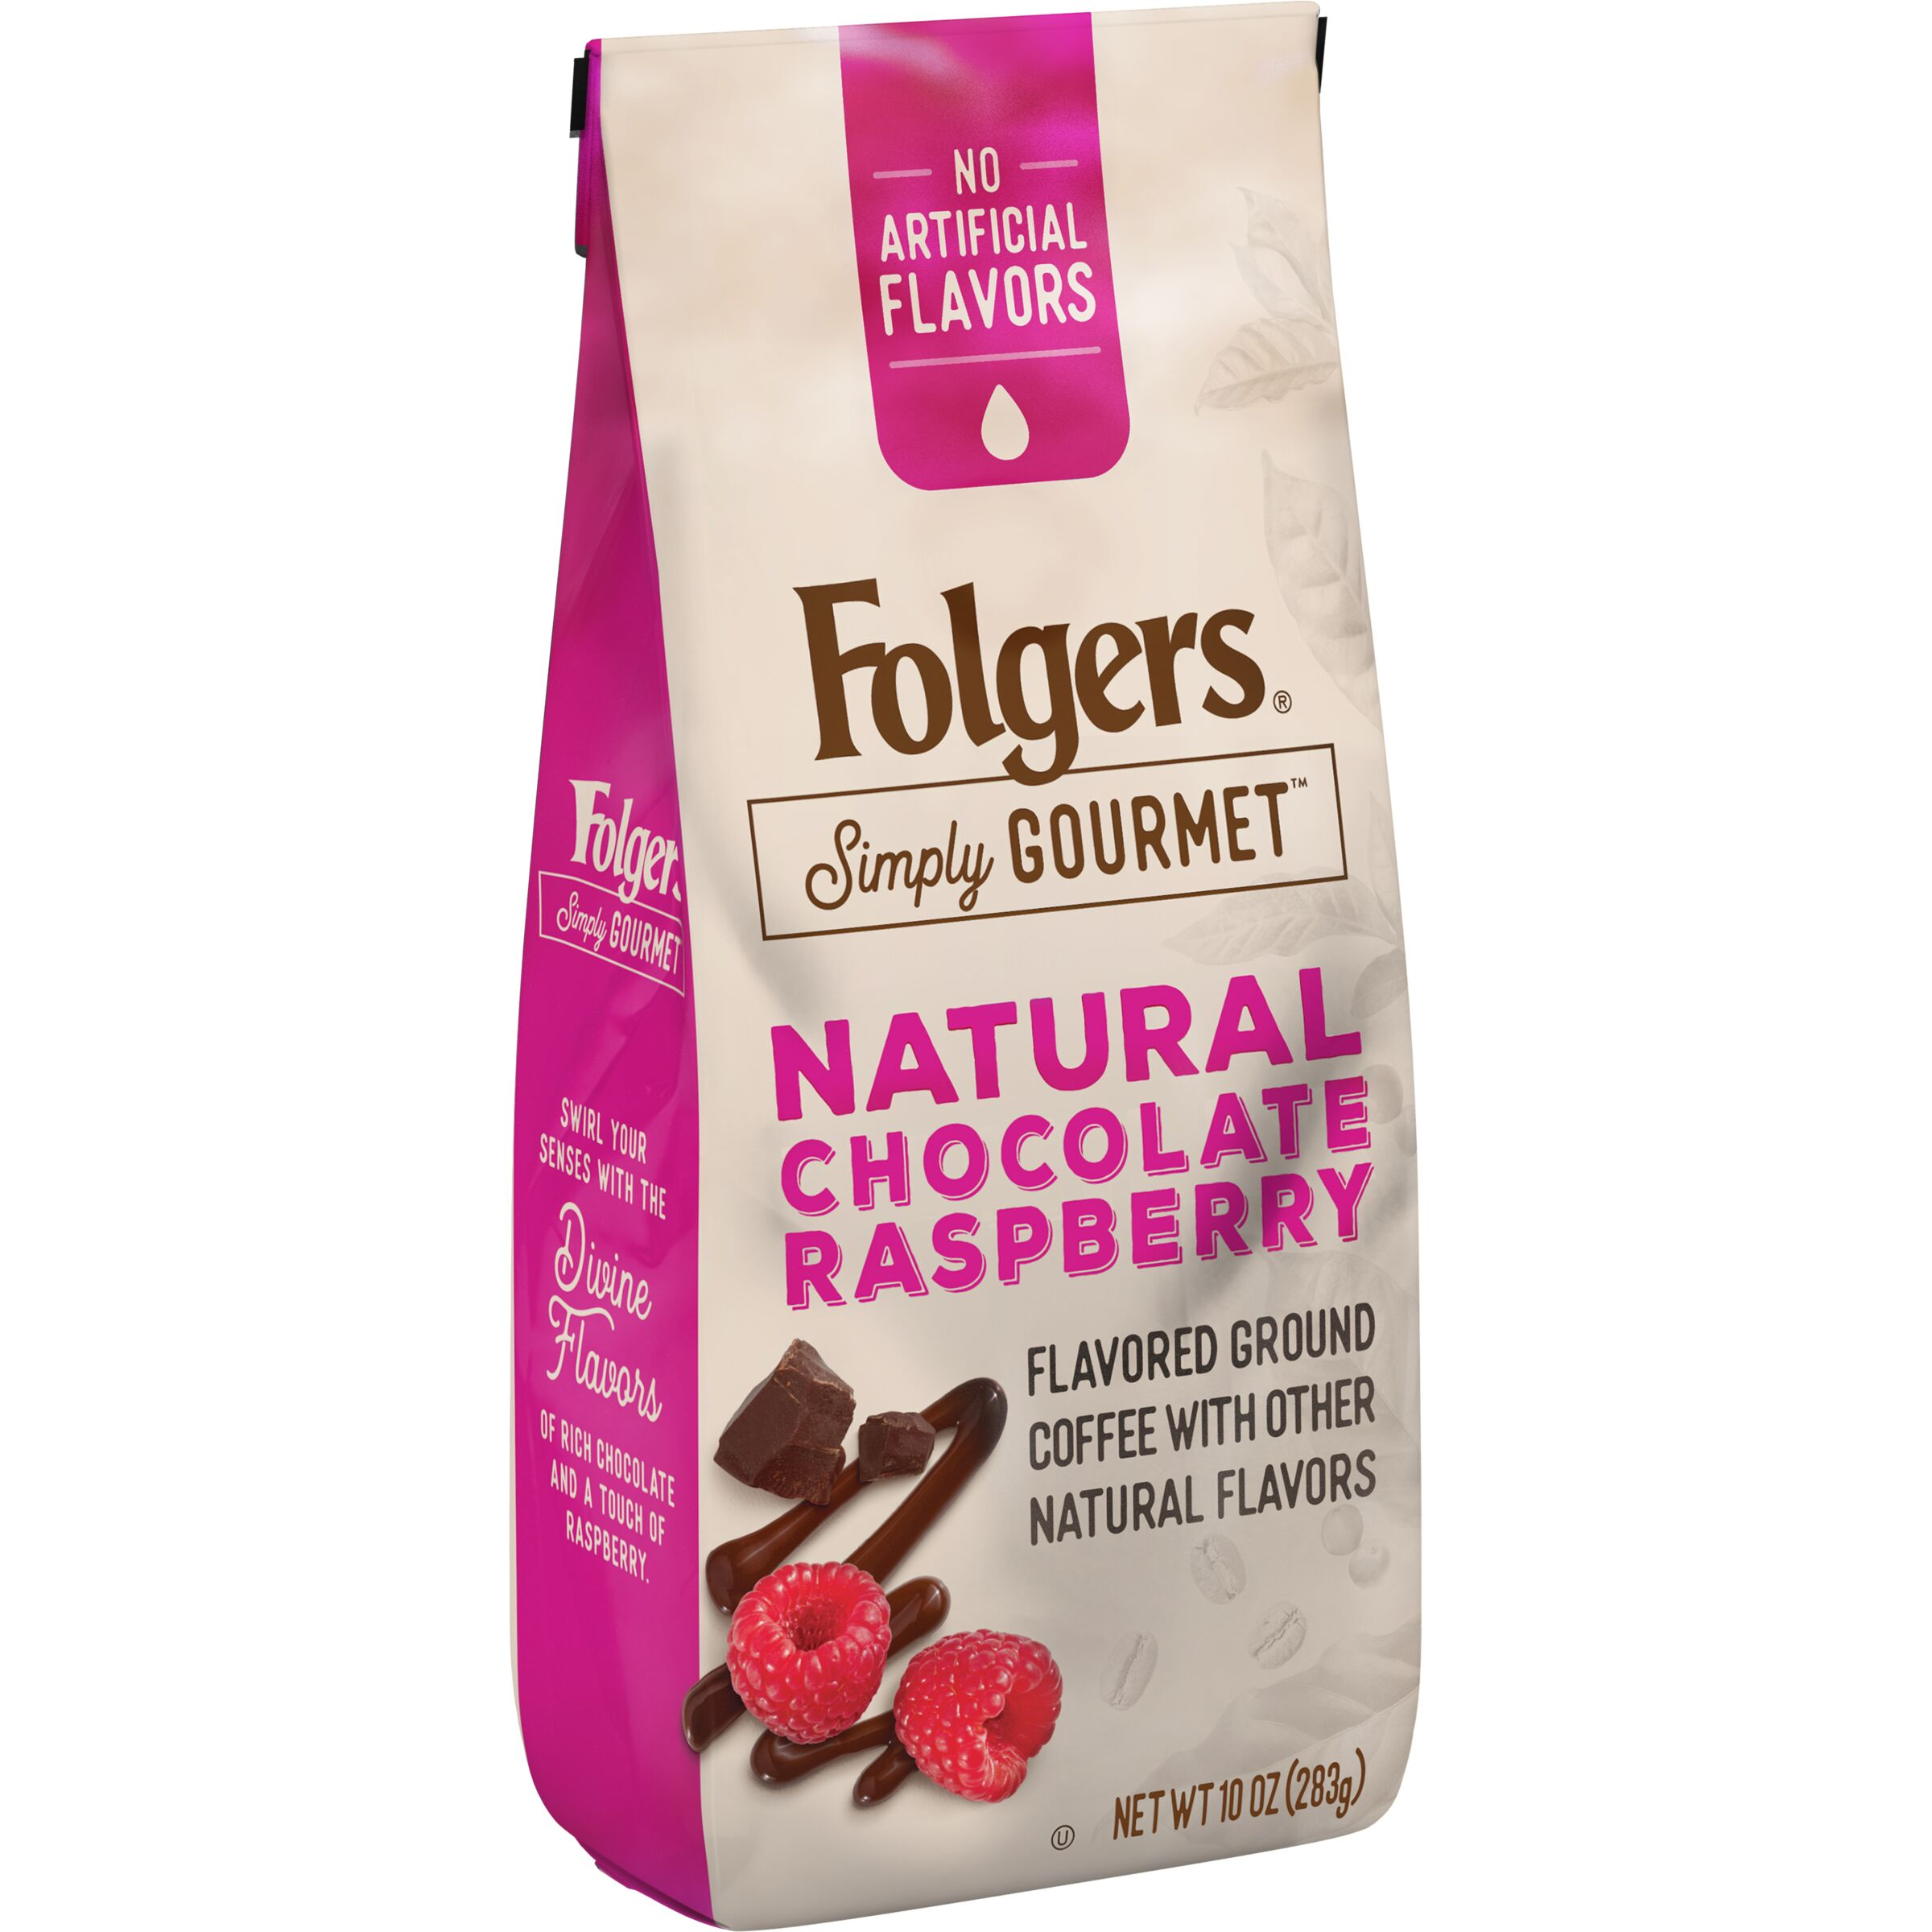 Folgers Simply Gourmet Natural Chocolate Raspberry Flavored Ground Coffee